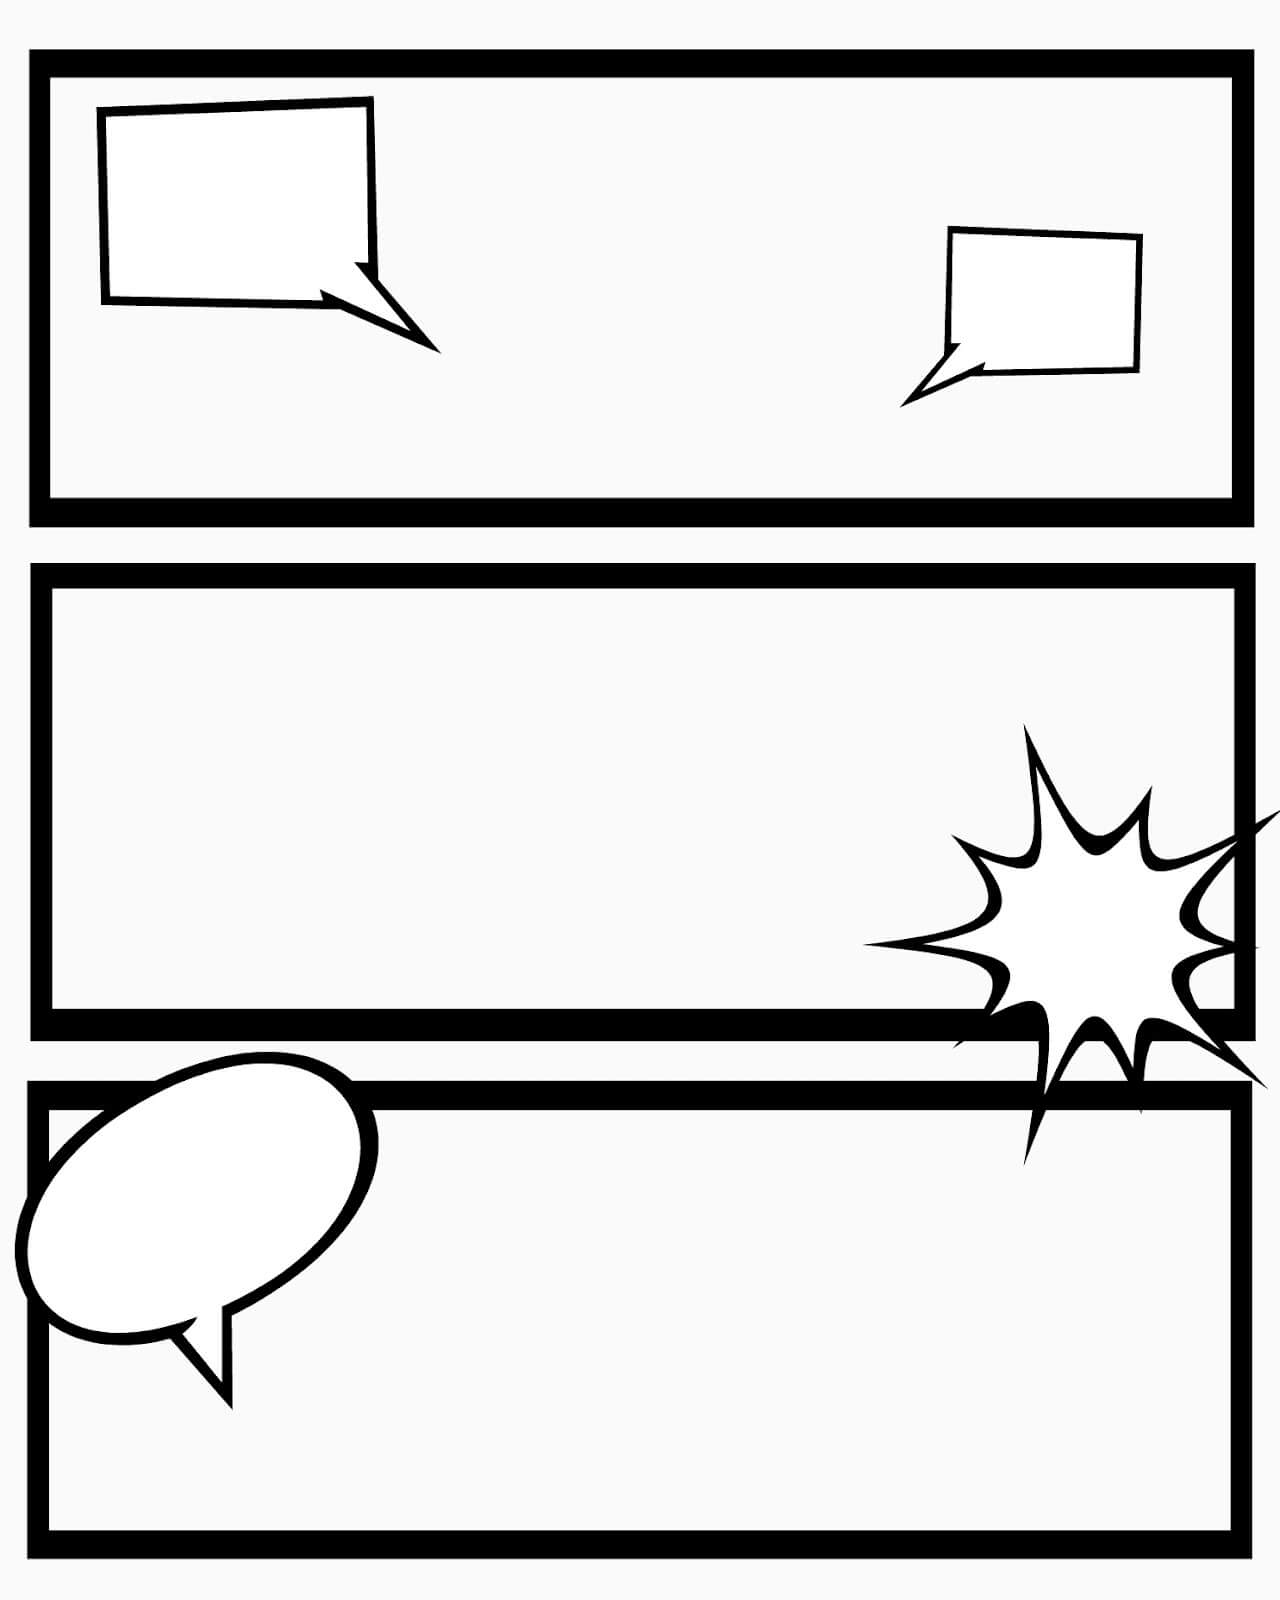 24 Images Of 8 Box Comic Strip Template With Blank Captions For Printable Blank Comic Strip Template For Kids